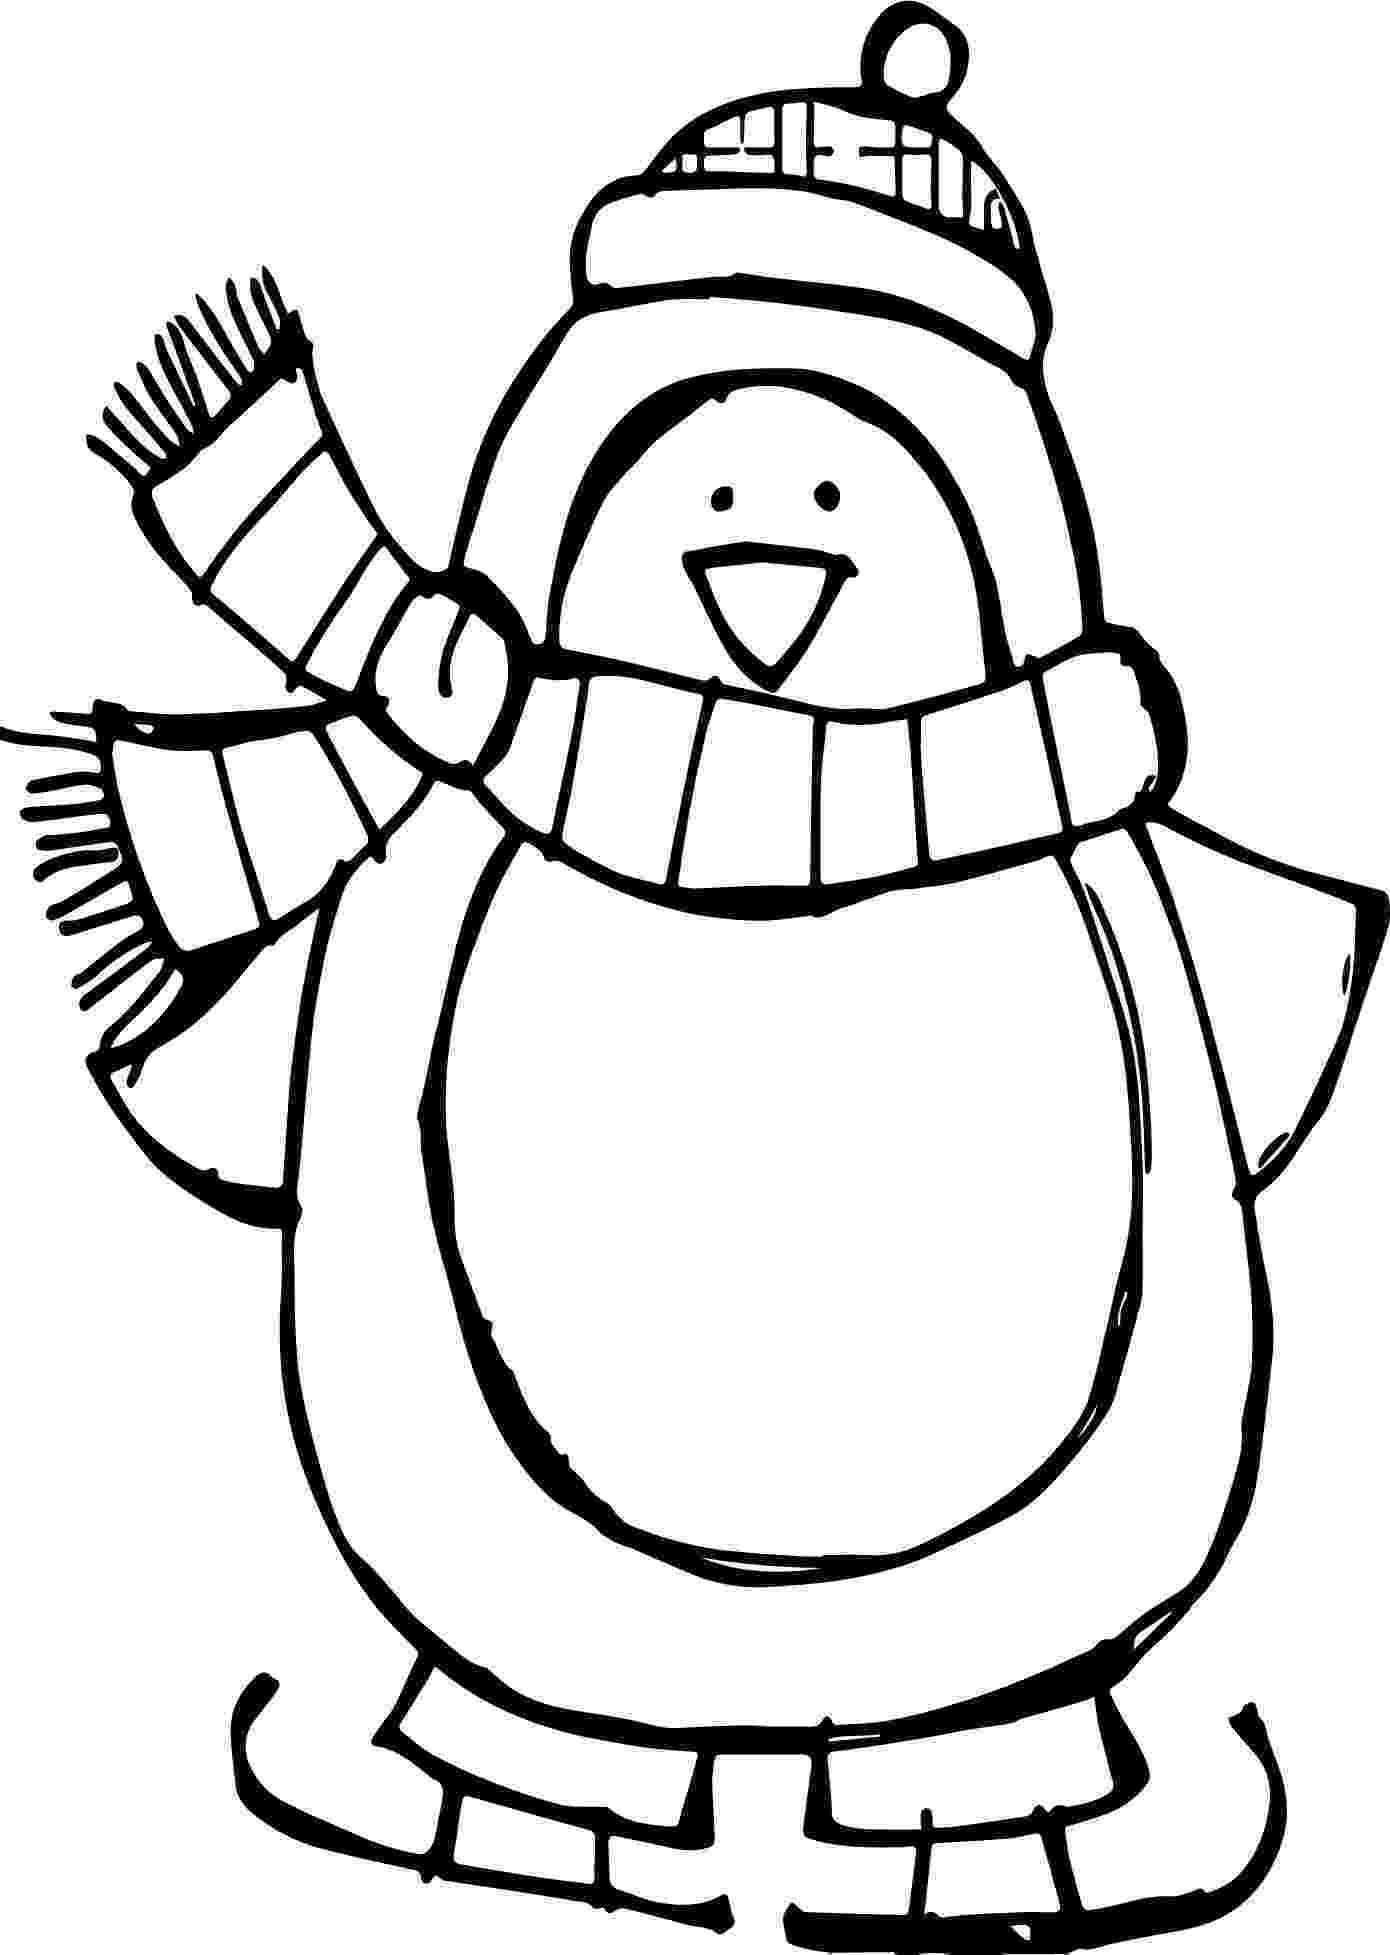 free penguin coloring pages winter basic penguin coloring page wecoloringpagecom pages penguin coloring free